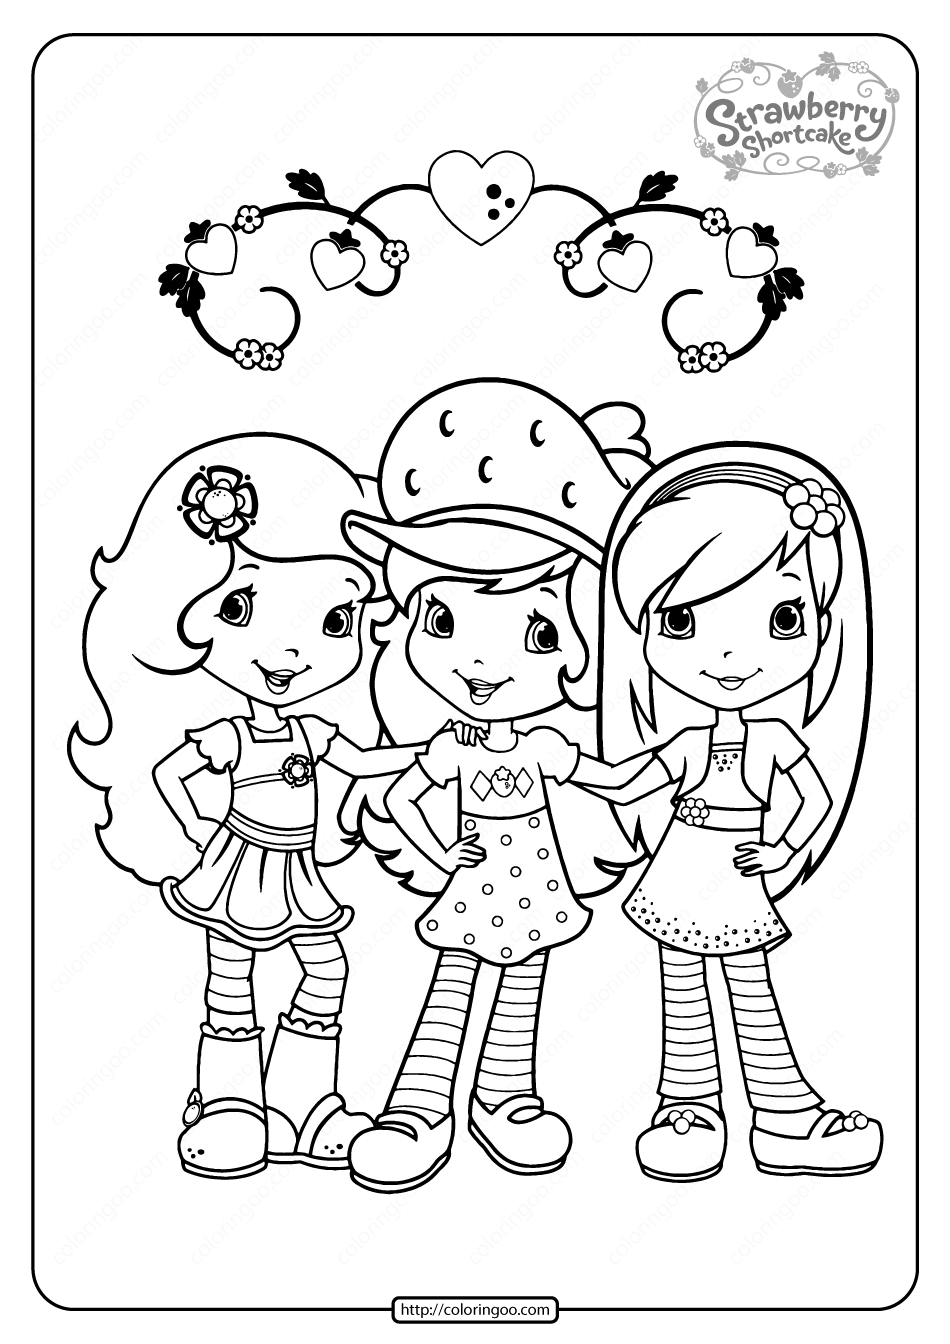 strawberry for coloring strawberry shortcake coloring pages strawberry for coloring